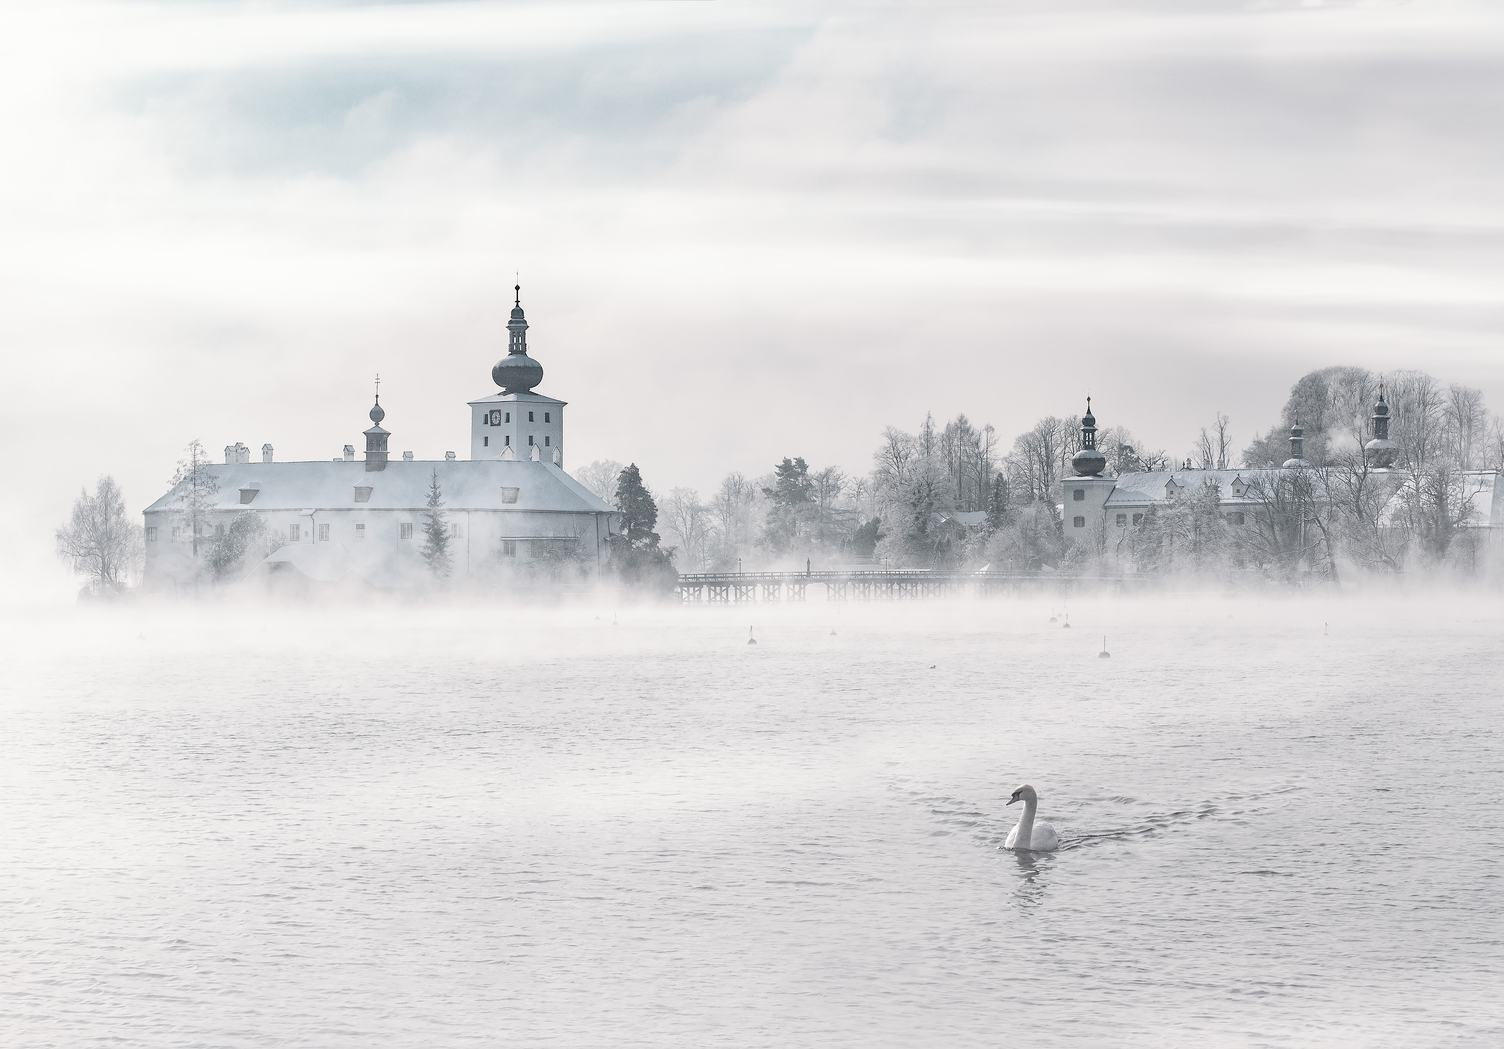 Winter Fog Landscape with Swan, Gmunden Austria